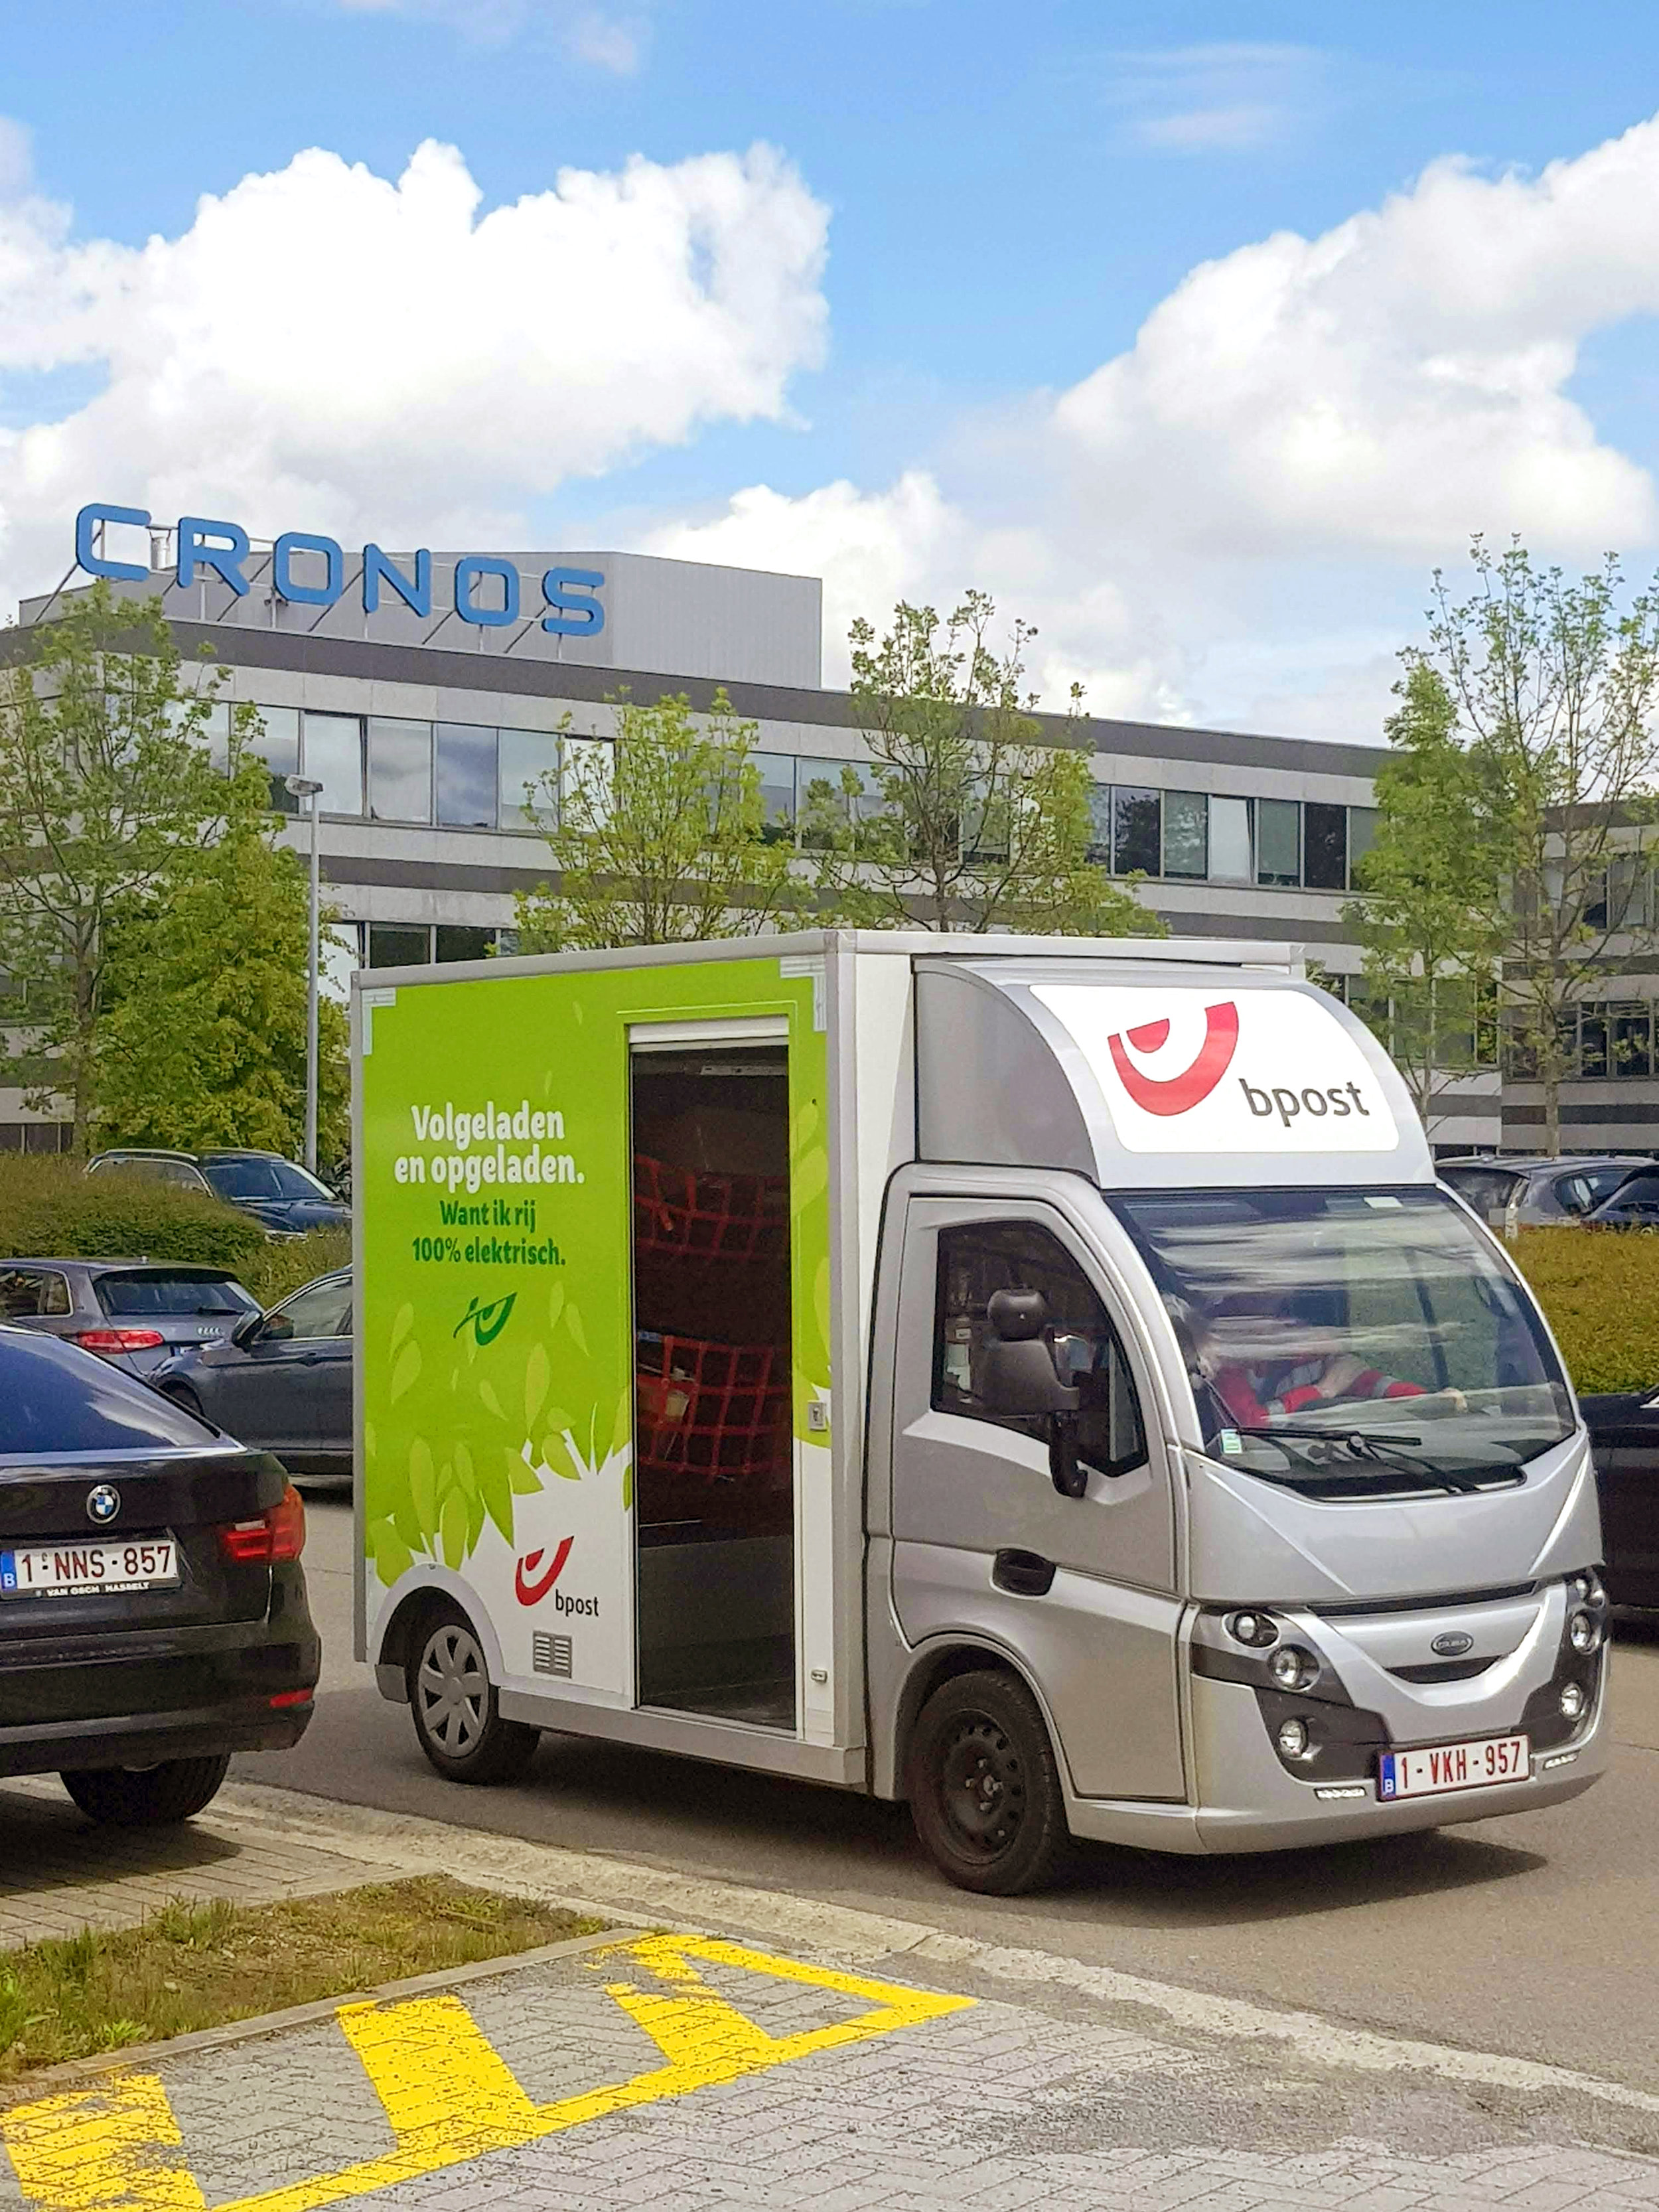 The experiment - bpost is conducting a series of tests at Cronos Group, a major player in technology innovation, with headquarters in Kontich. The parking lot of Cronos Group is used to learn about how this service might work in real life conditions, and if people would be interested in it.